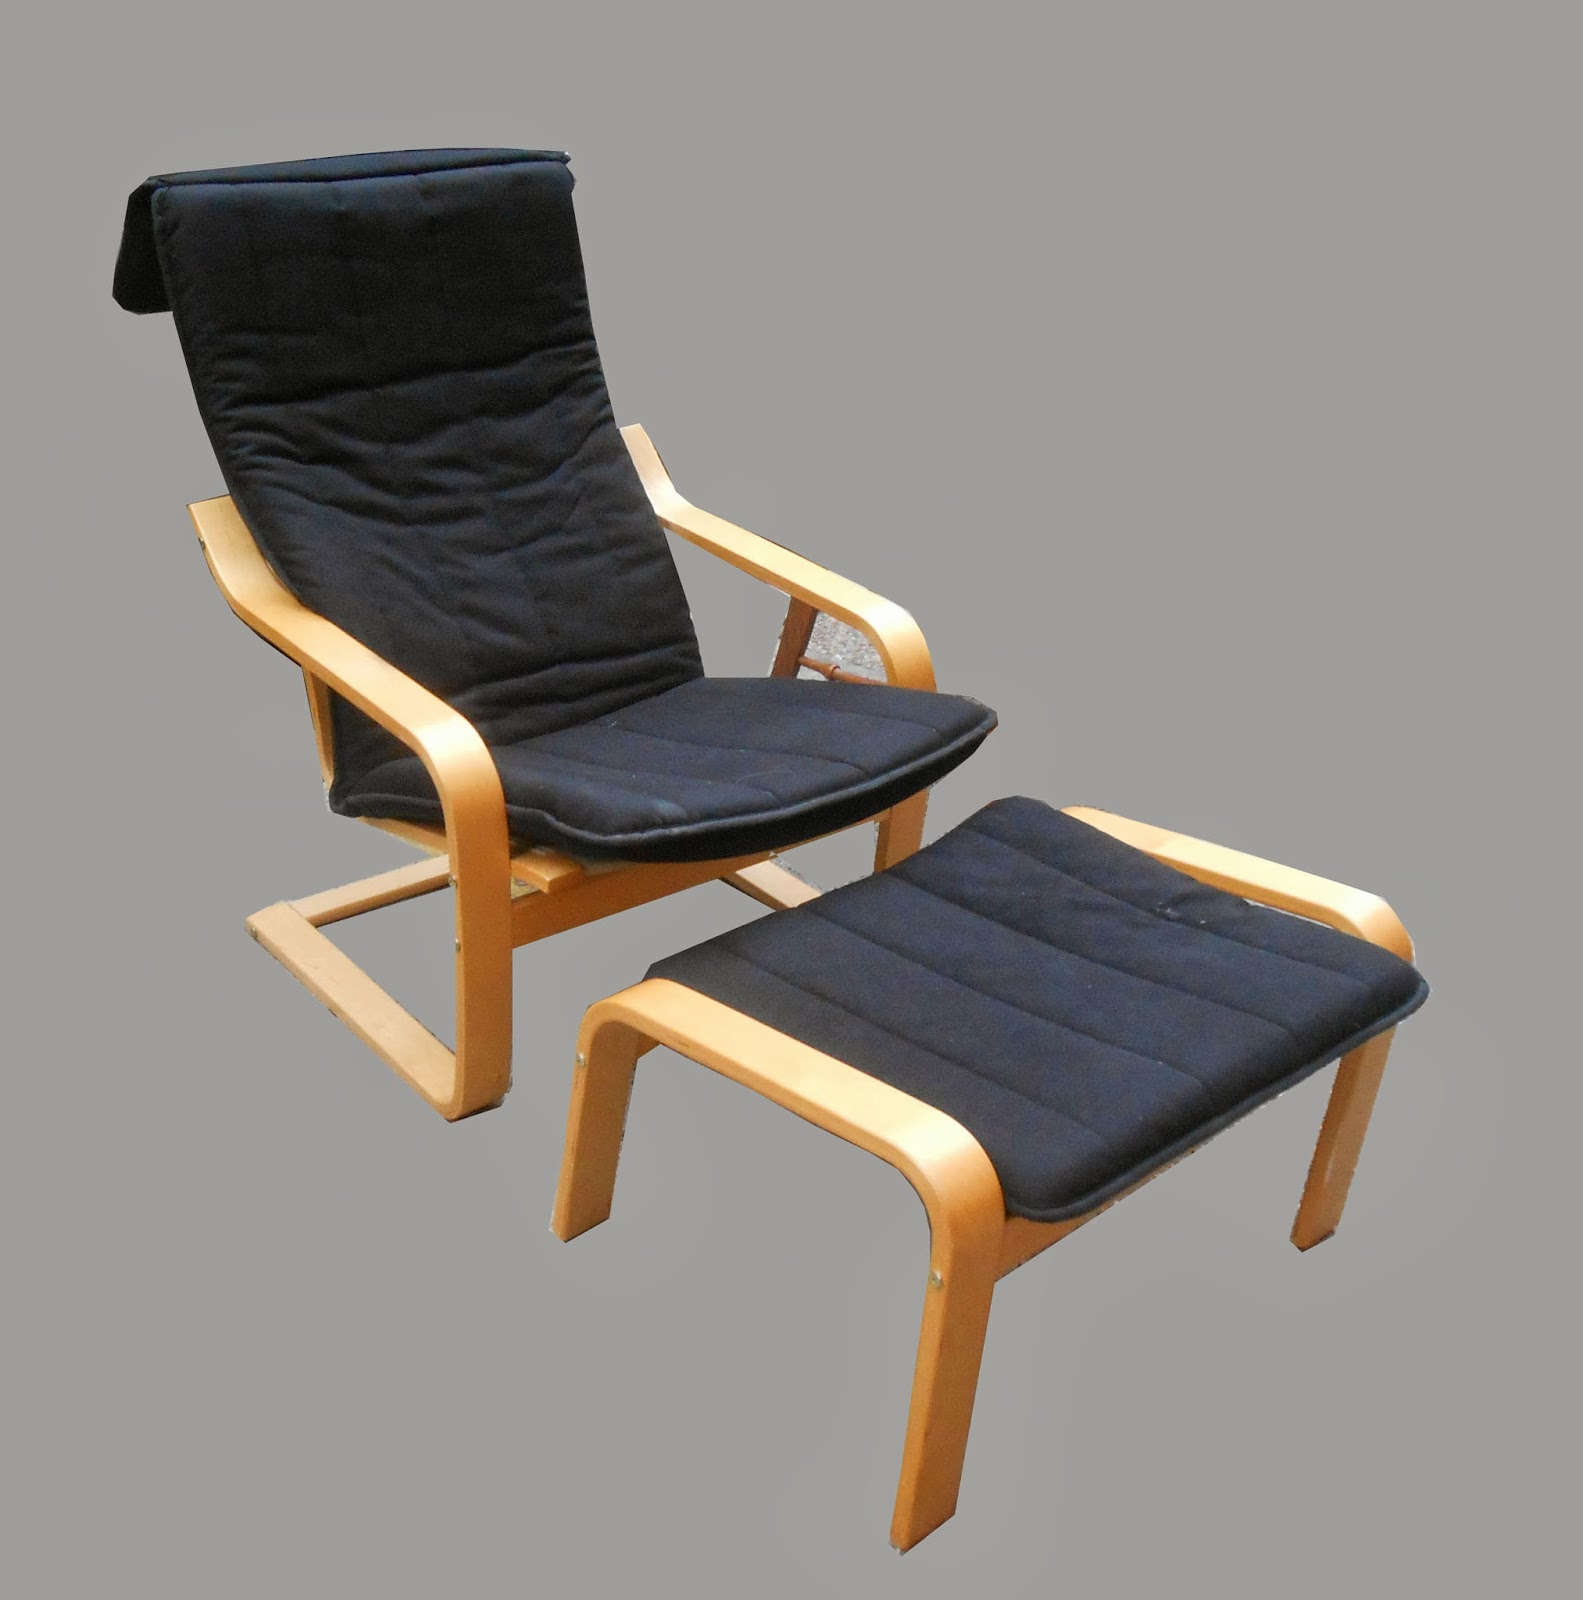 Ikea Lounge Chair Uhuru Furniture And Collectibles Ikea Poang Lounge Chair